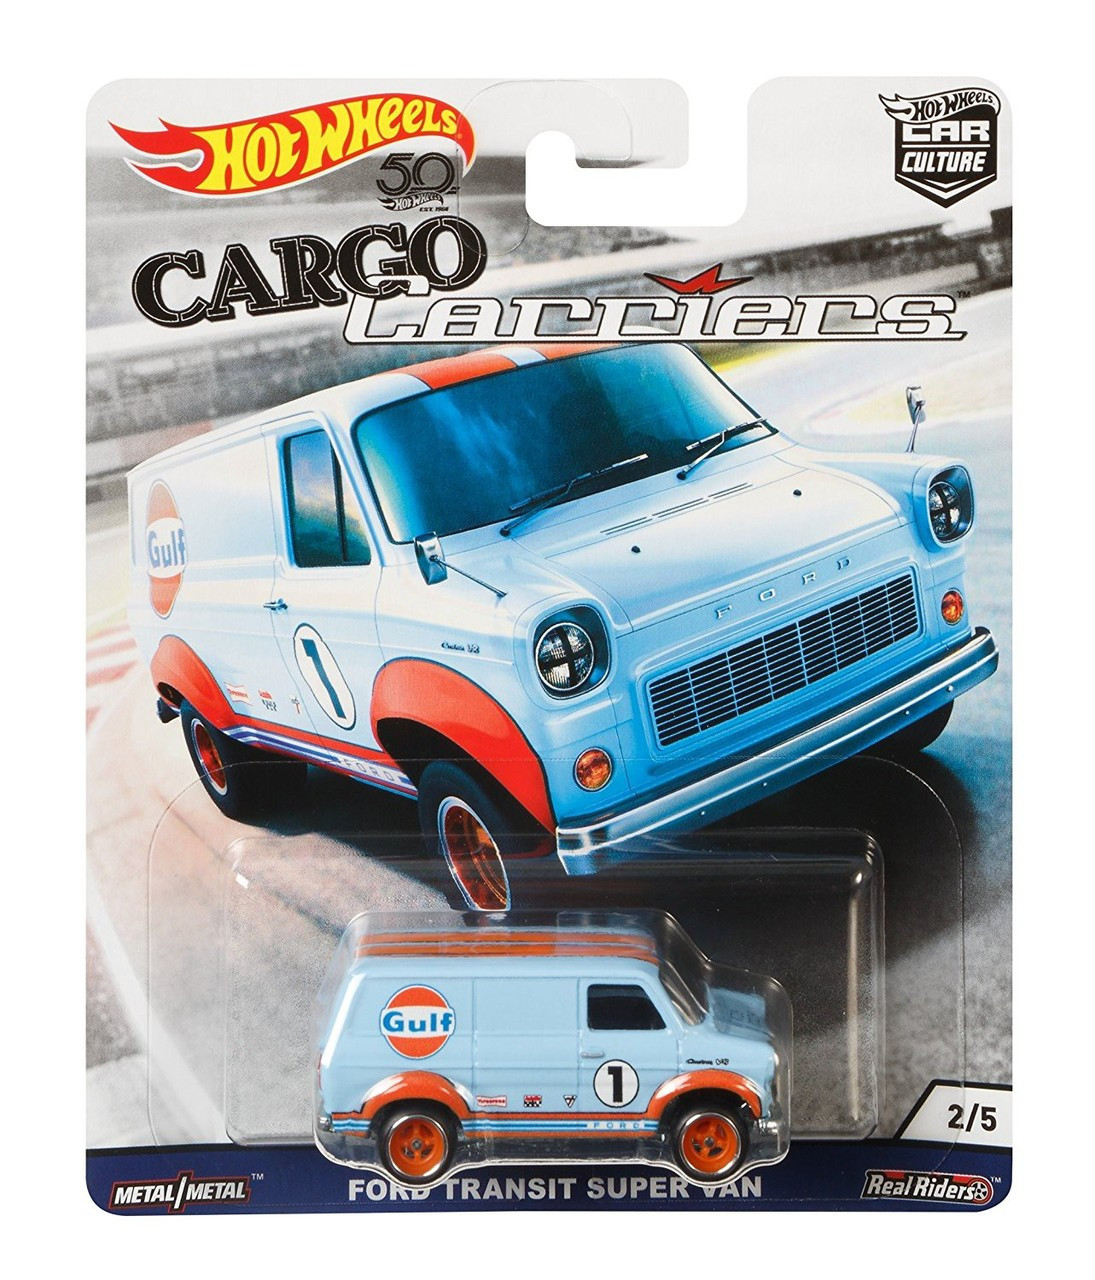 Hot Wheels Cargo Carriers Ford Transit Super Van 164 Die Cast Car 25